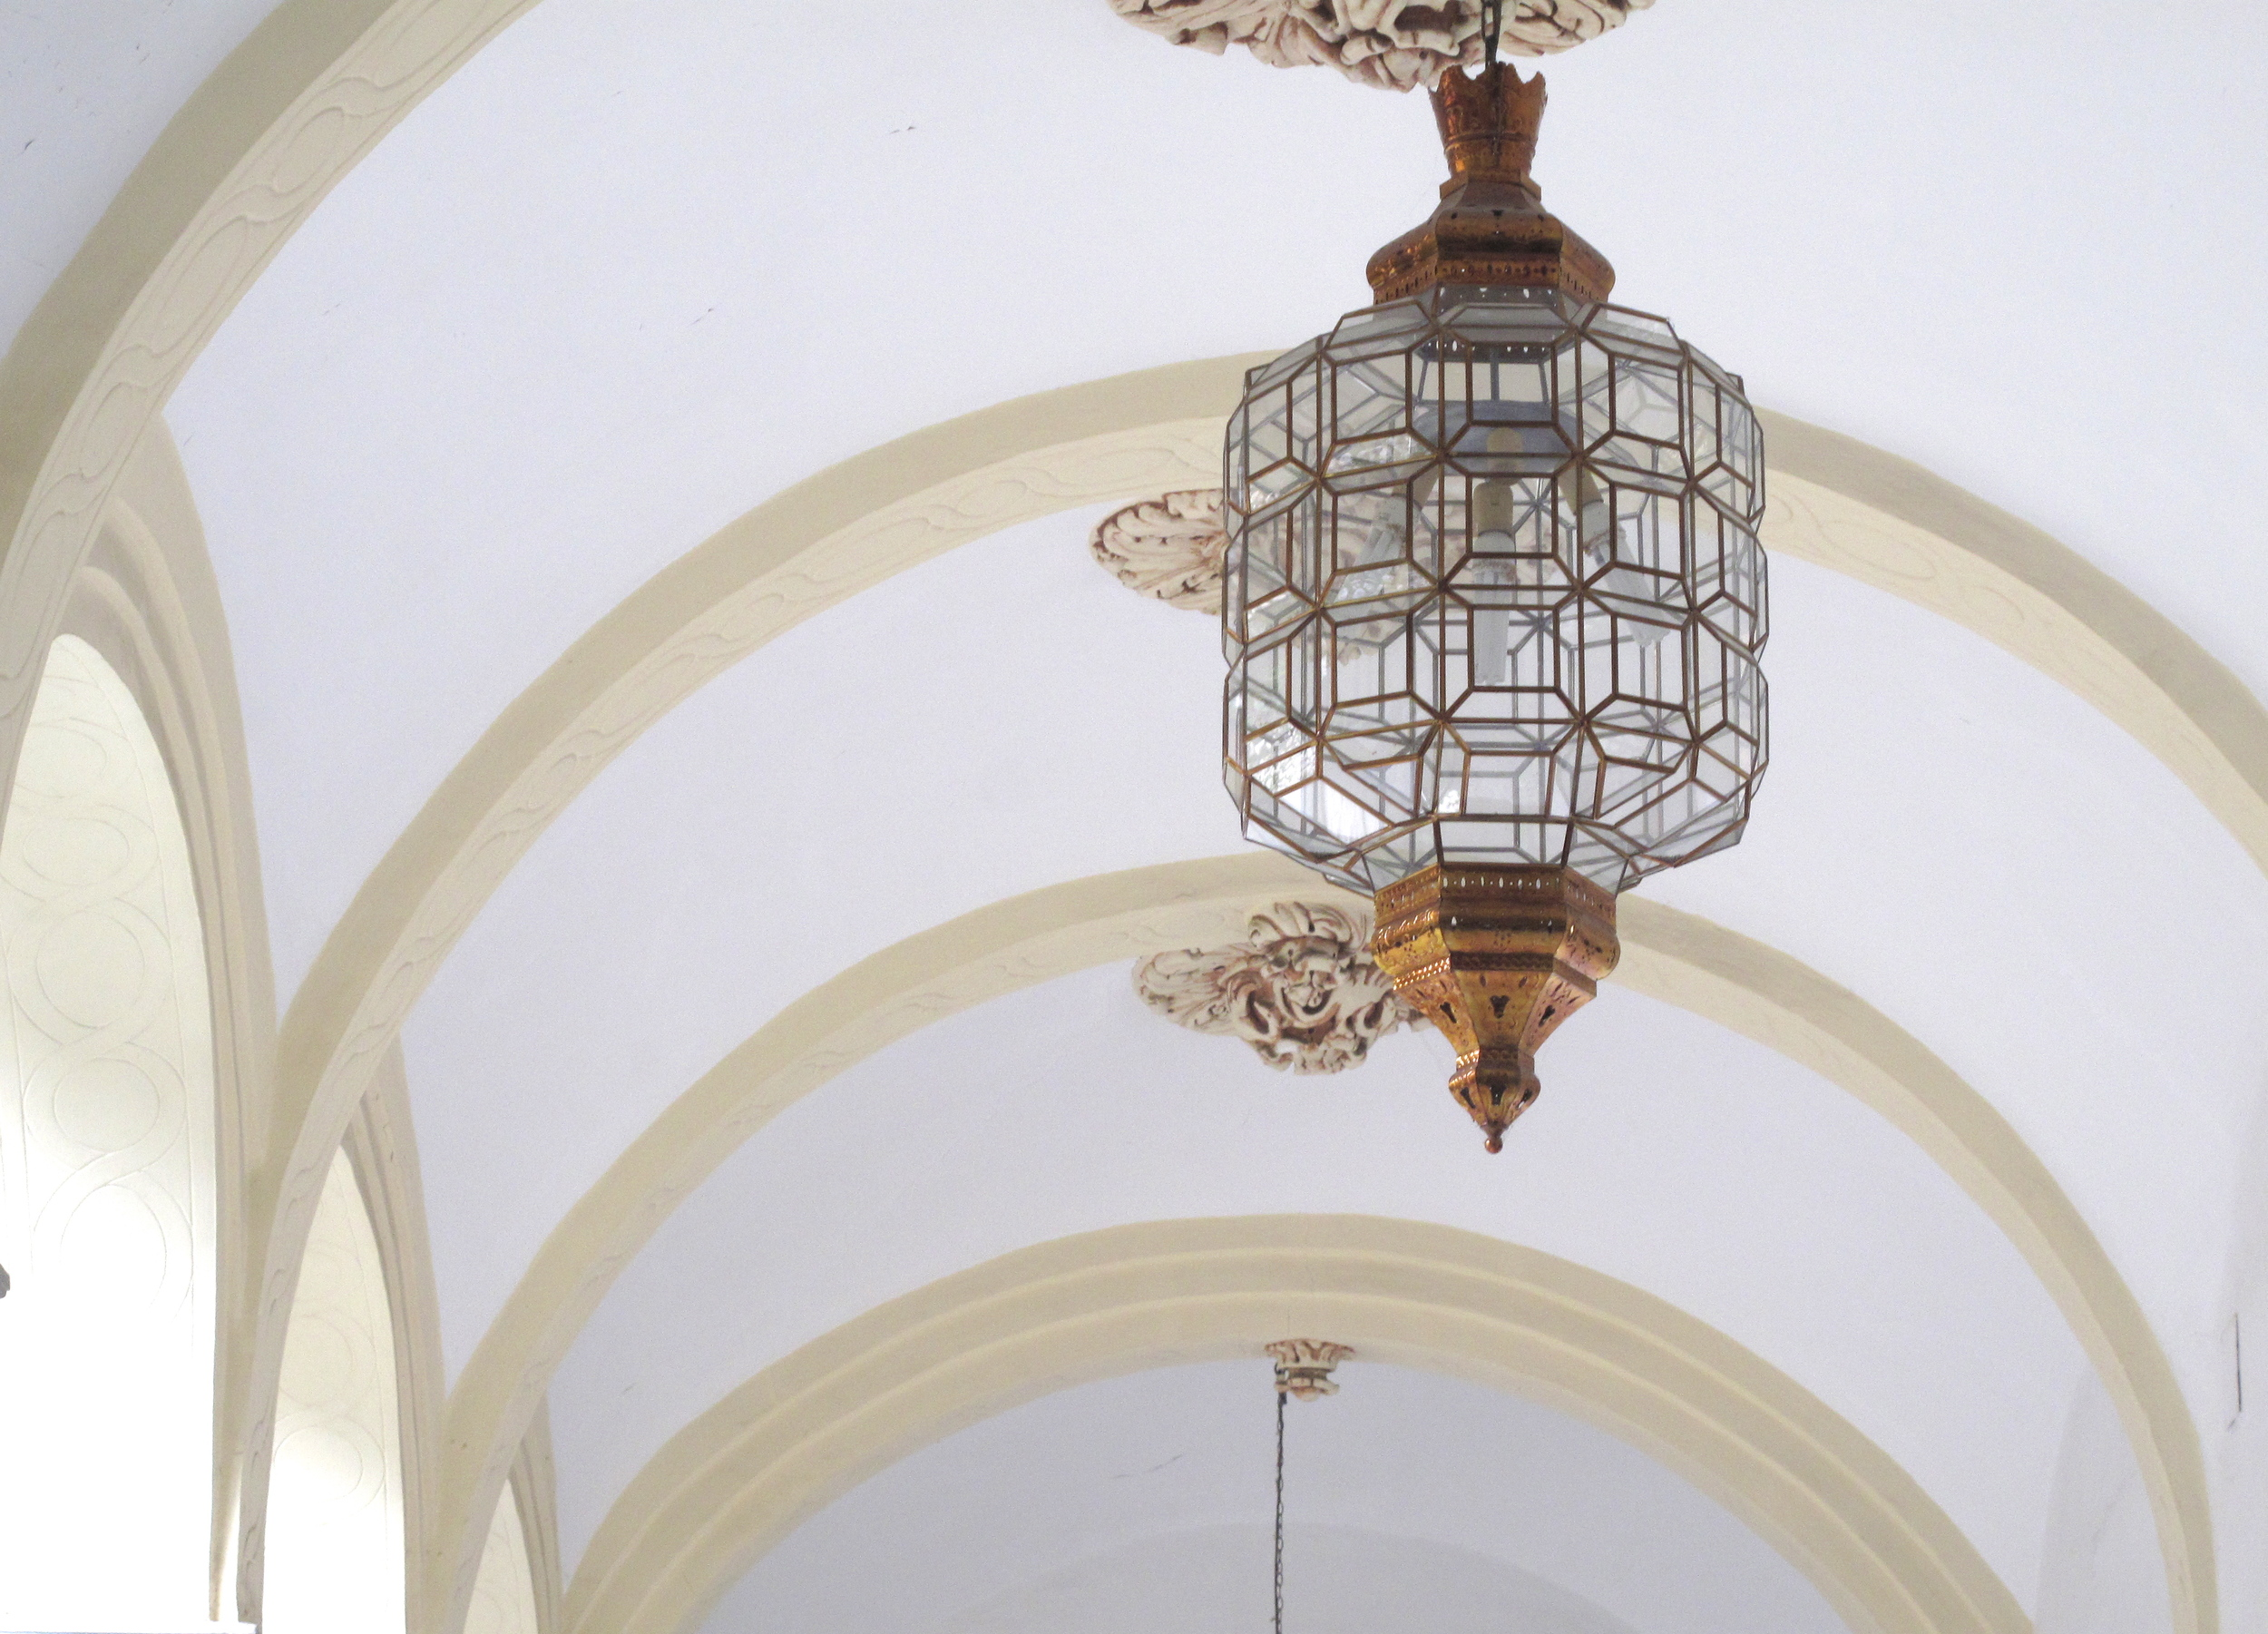 glass light shade in geometric oriental design in a white corridor